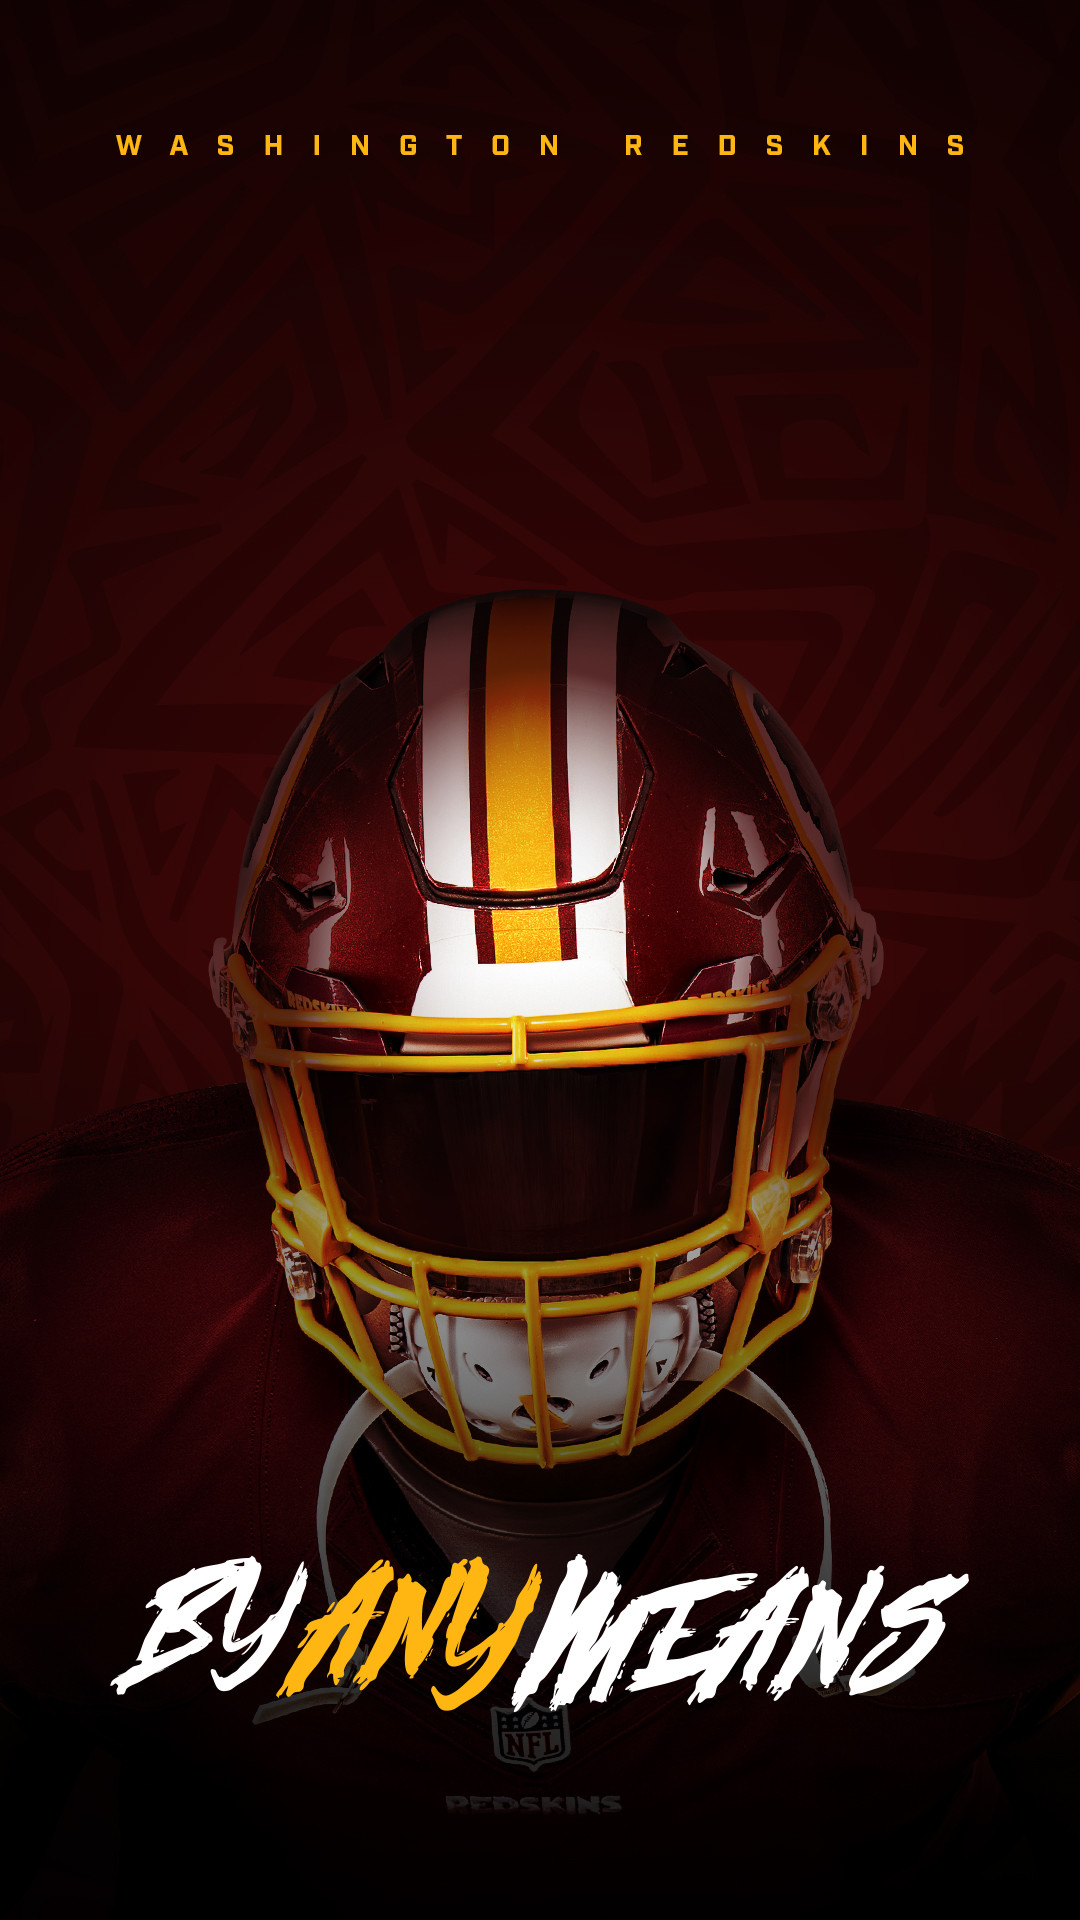 Redskins Wallpaper For Iphone 67 Images